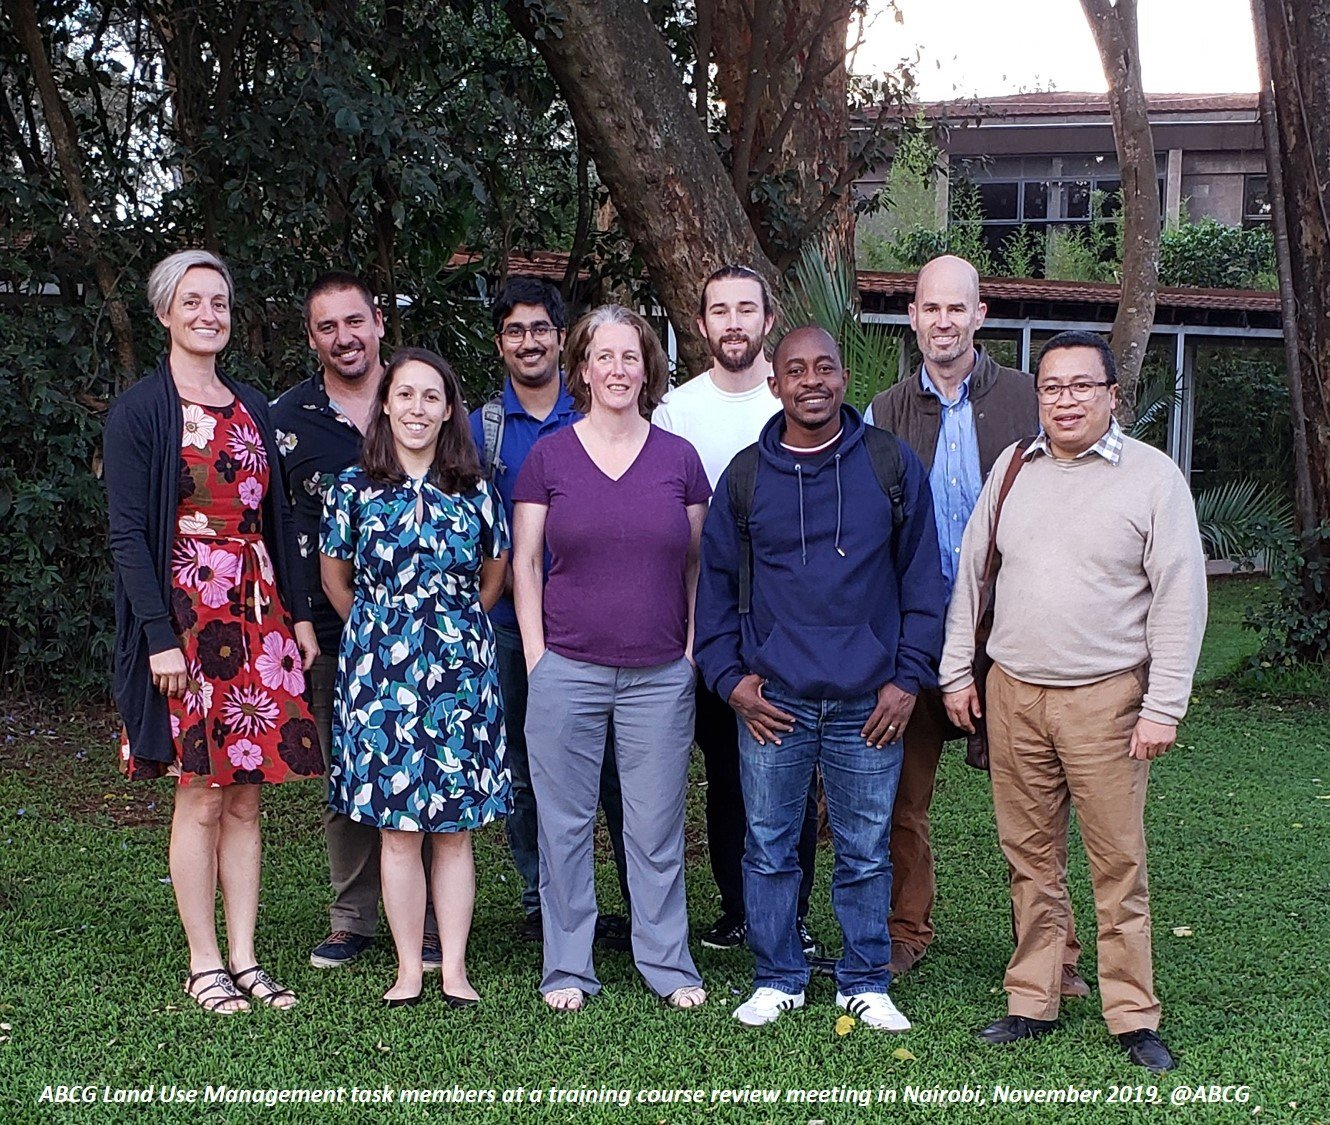 LUM modular training course meeting on integrating biodiversity in Land Use Planning for African countries Nov 2019